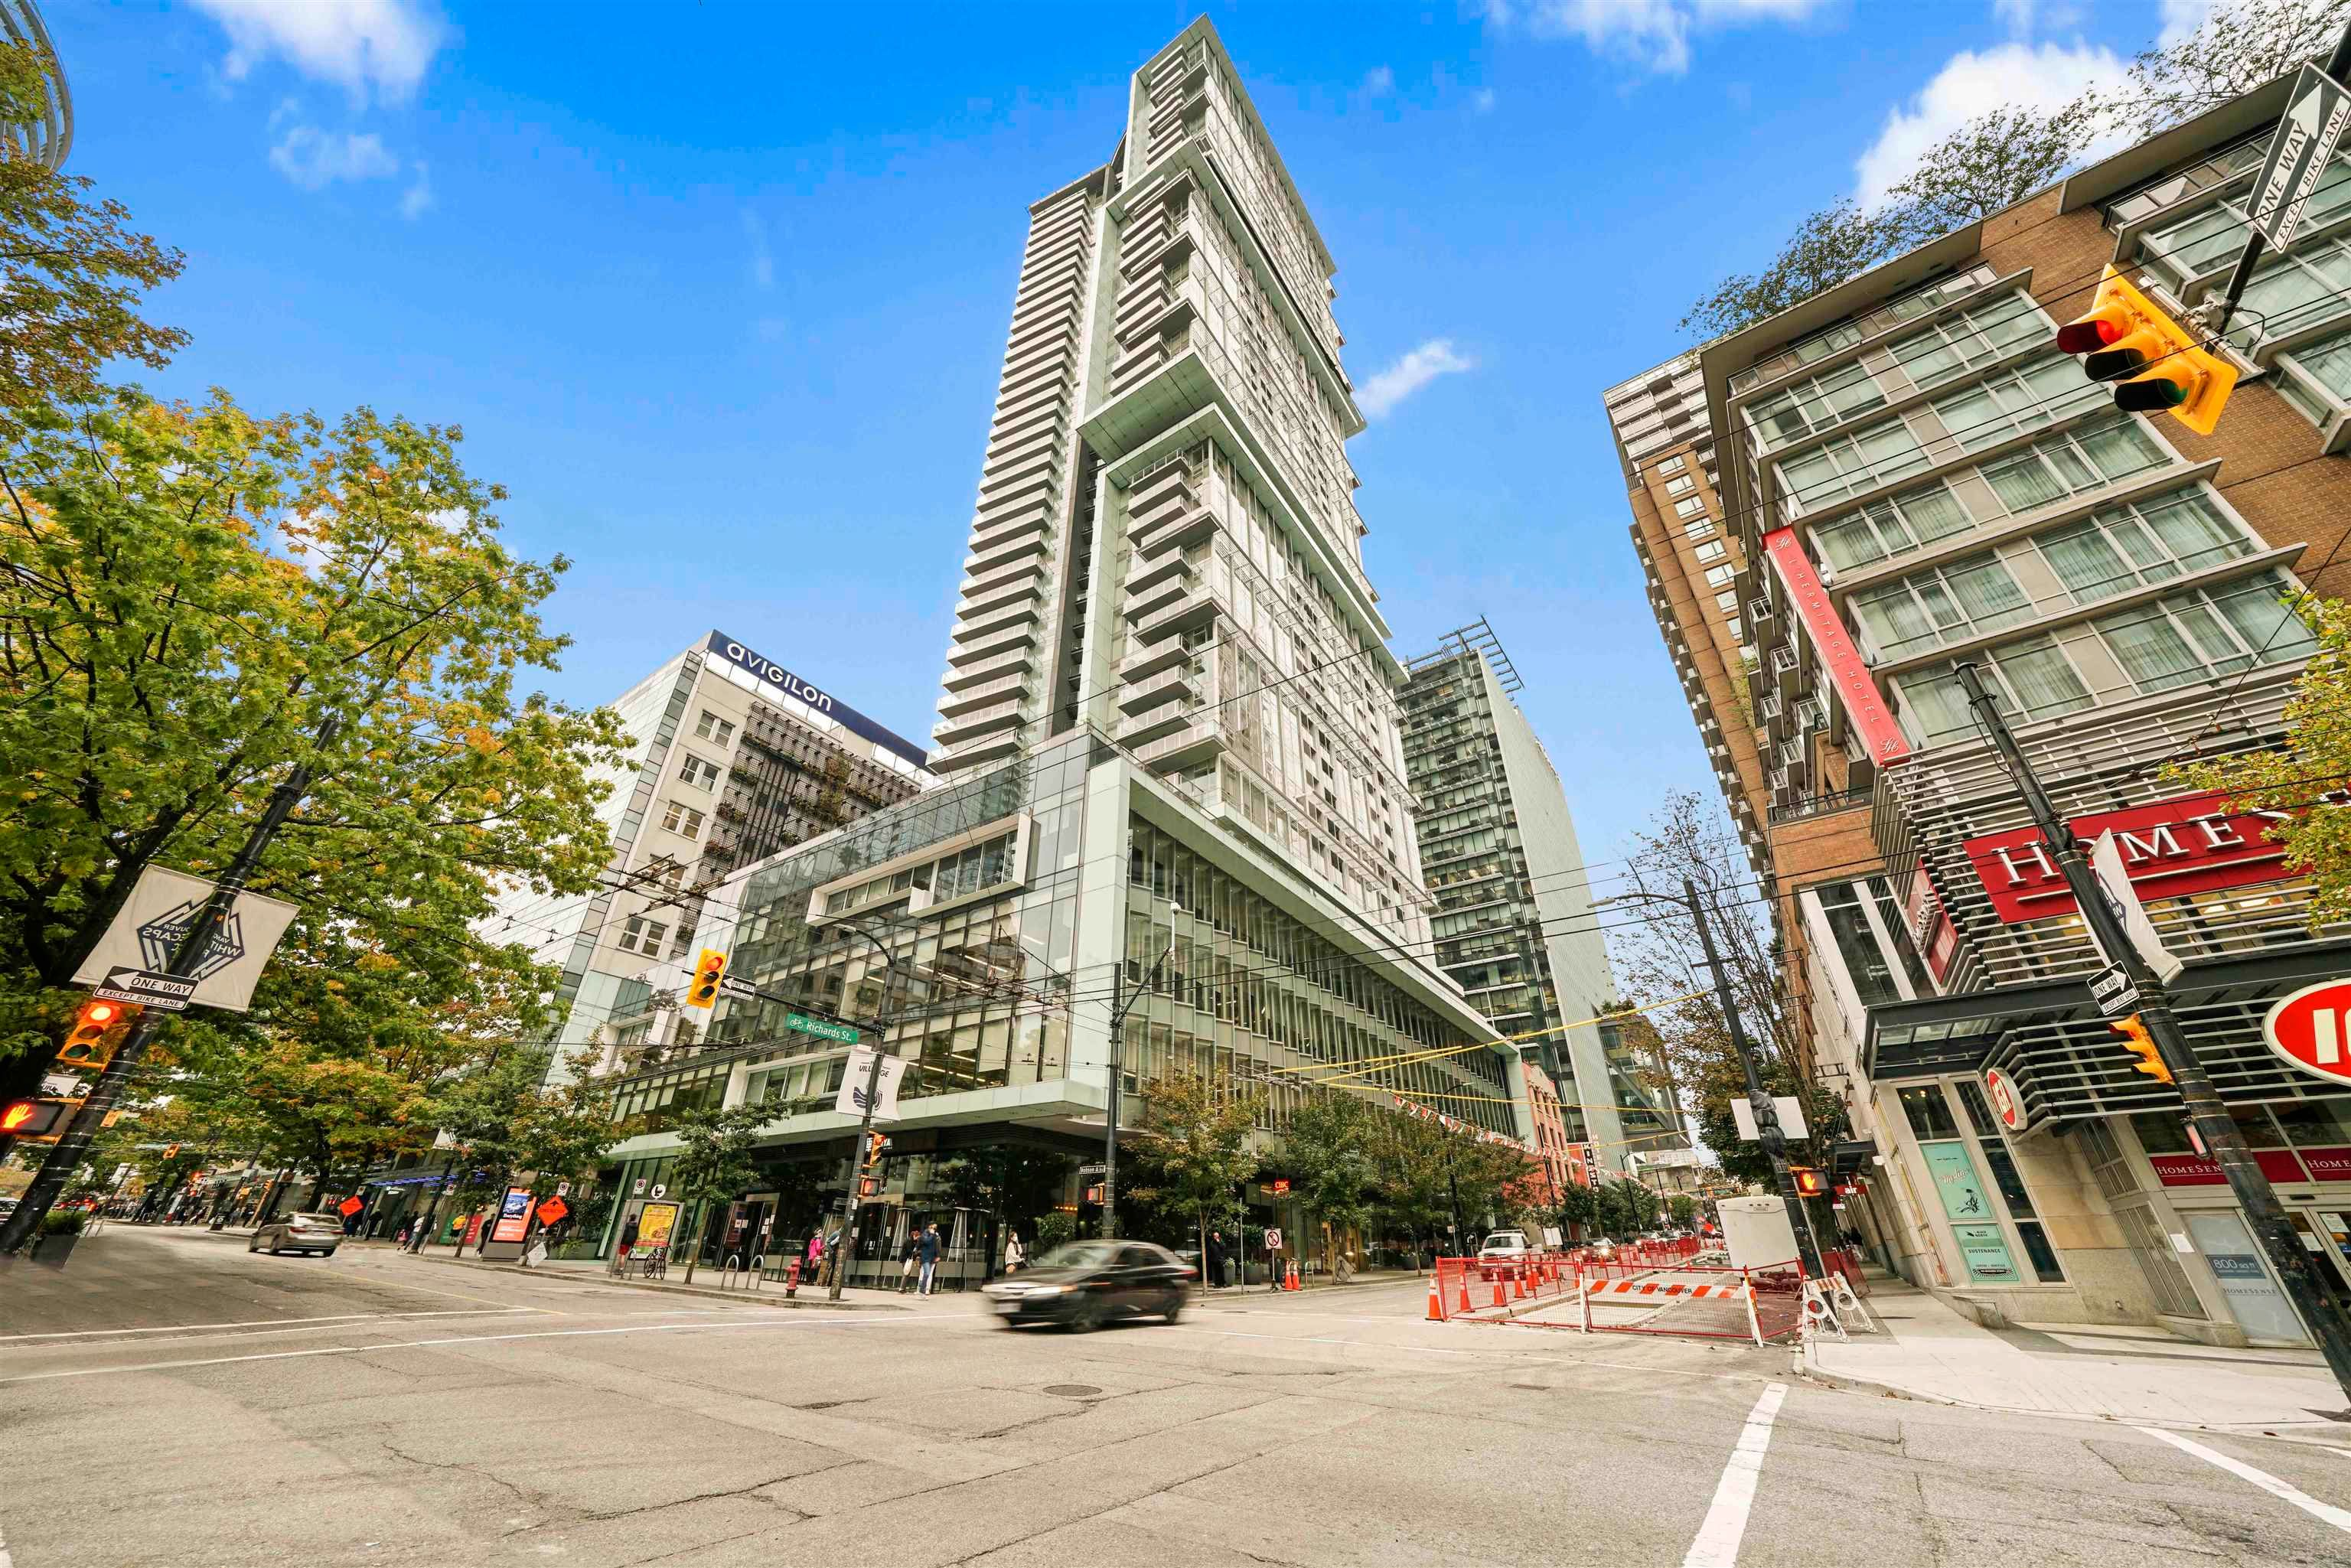 """Main Photo: 2308 777 RICHARDS Street in Vancouver: Downtown VW Condo for sale in """"TELUS GARDEN"""" (Vancouver West)  : MLS®# R2617805"""